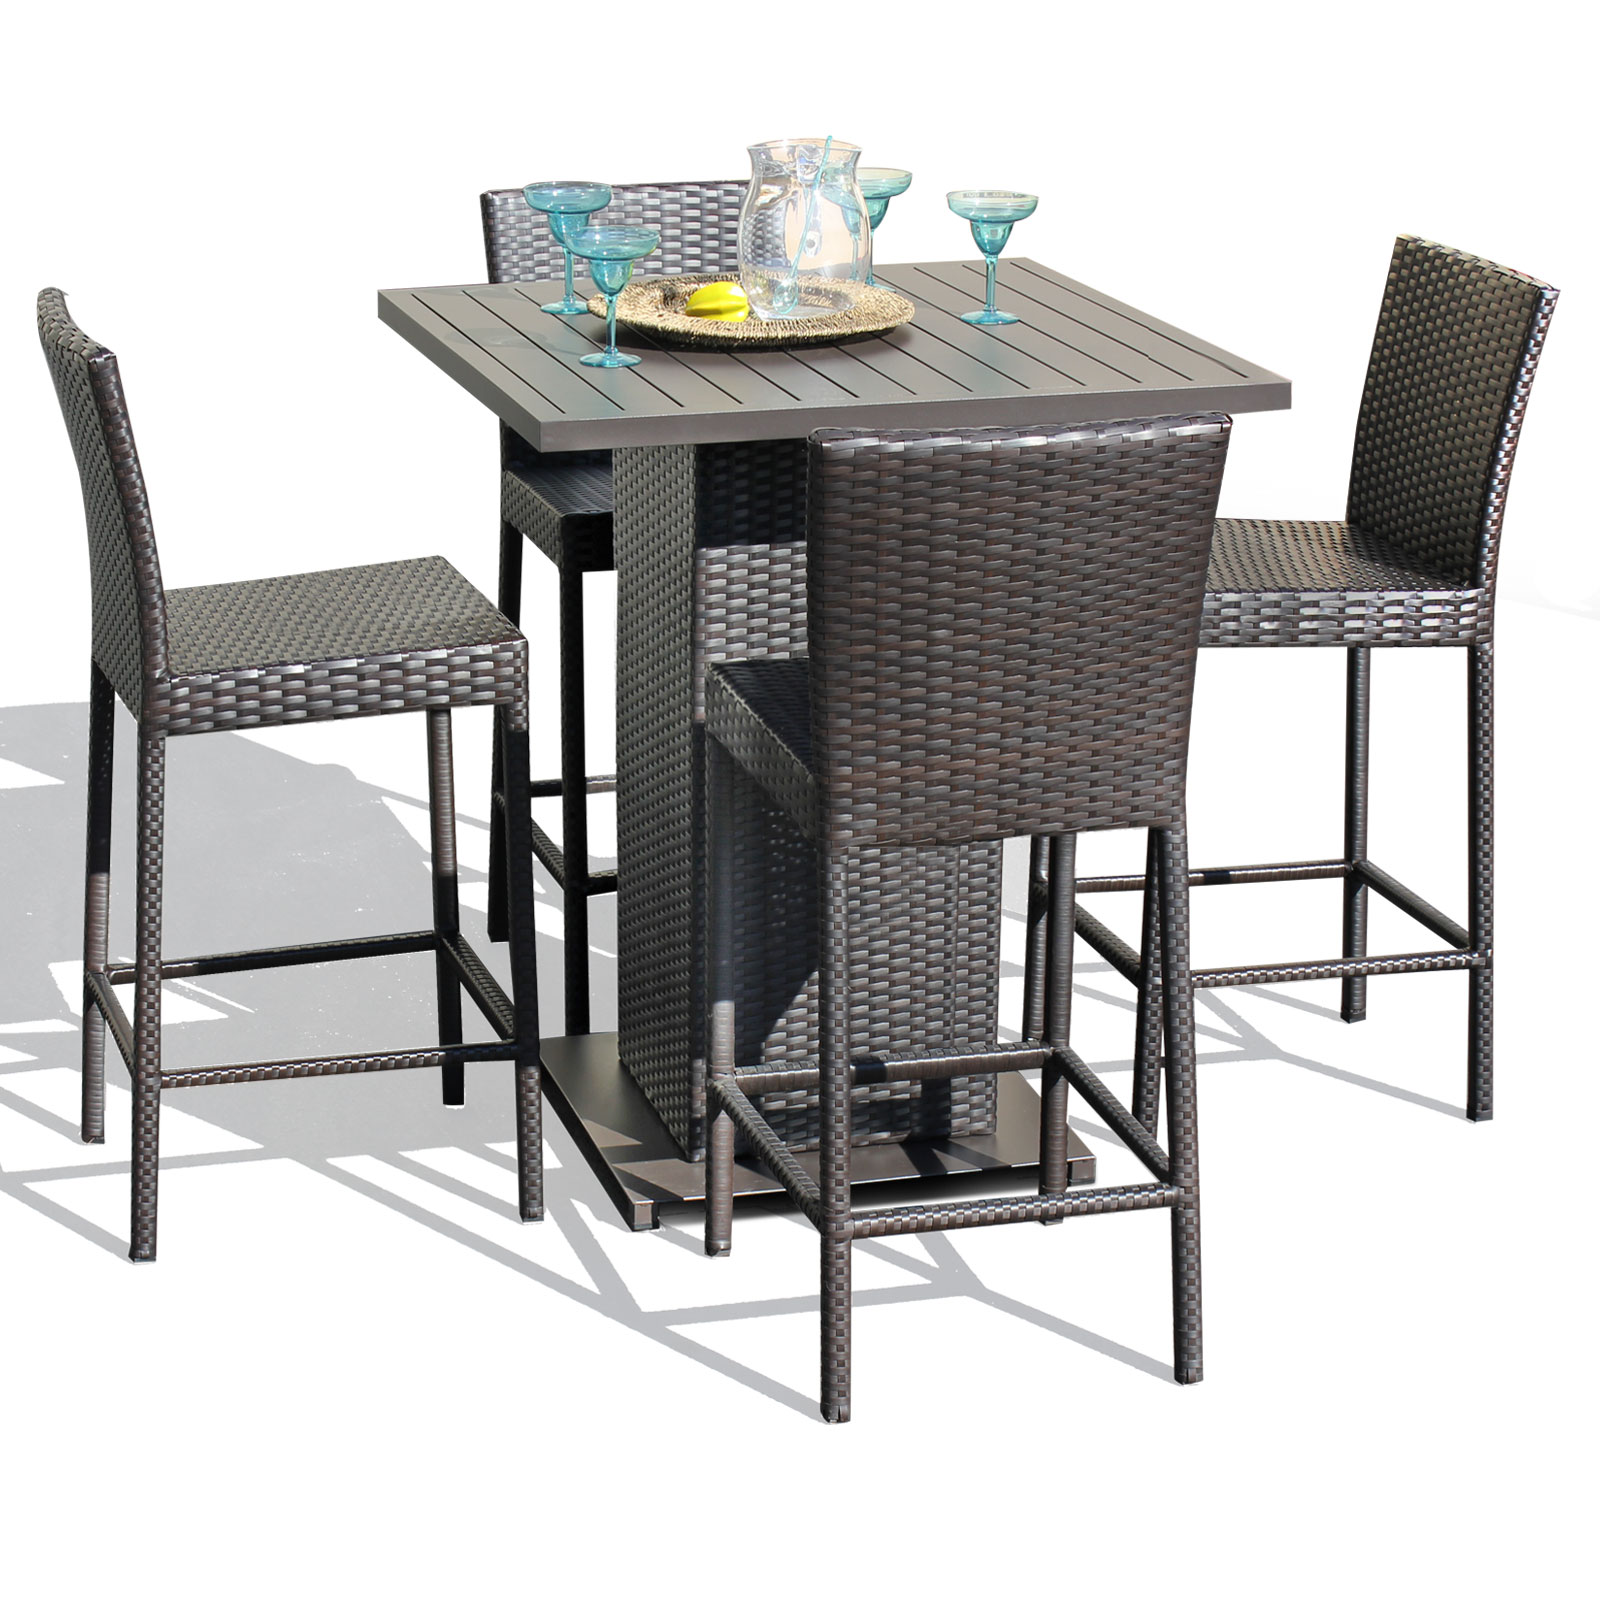 Venus Pub Table Set With Barstools 5 Piece Outdoor Wicker Patio Furniture